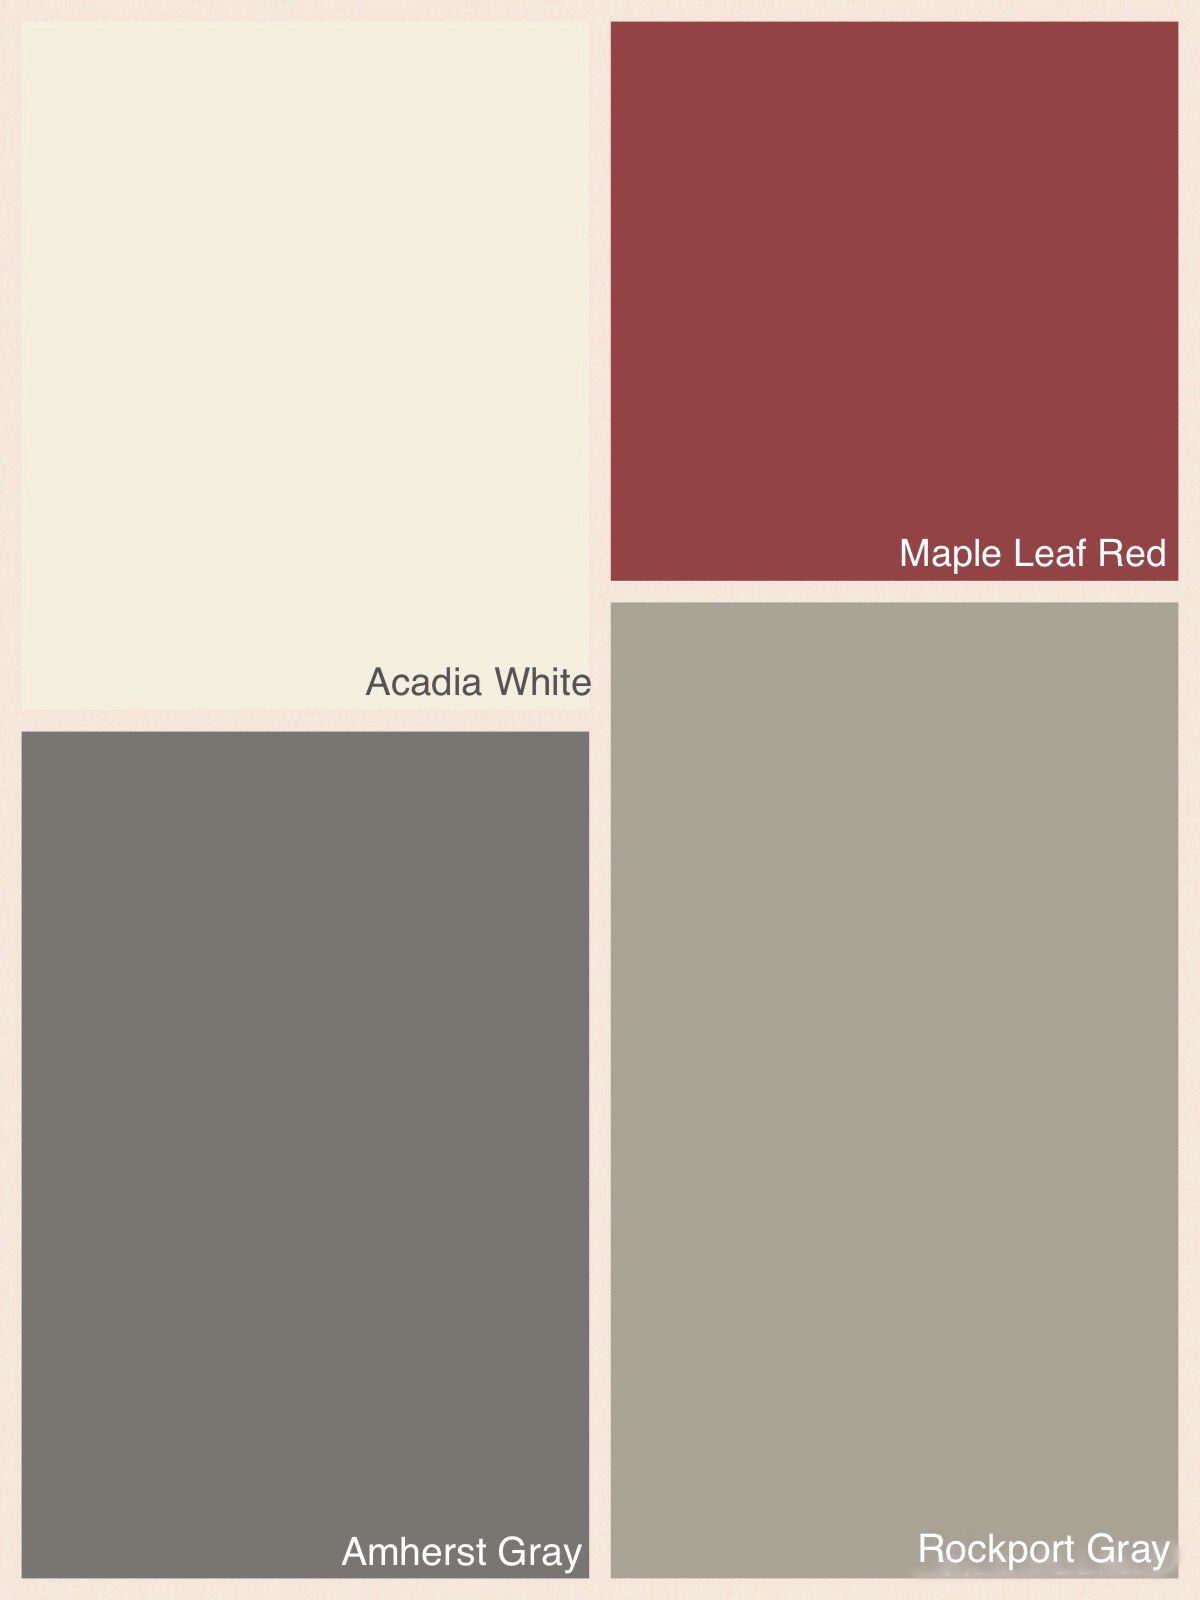 Rockport gray hc 105 paint benjamin moore rockport gray paint color - Gray Exterior Paint Amherst Gray Hc Benjamin Moore Colours For Exterior Of House Main Colour Download